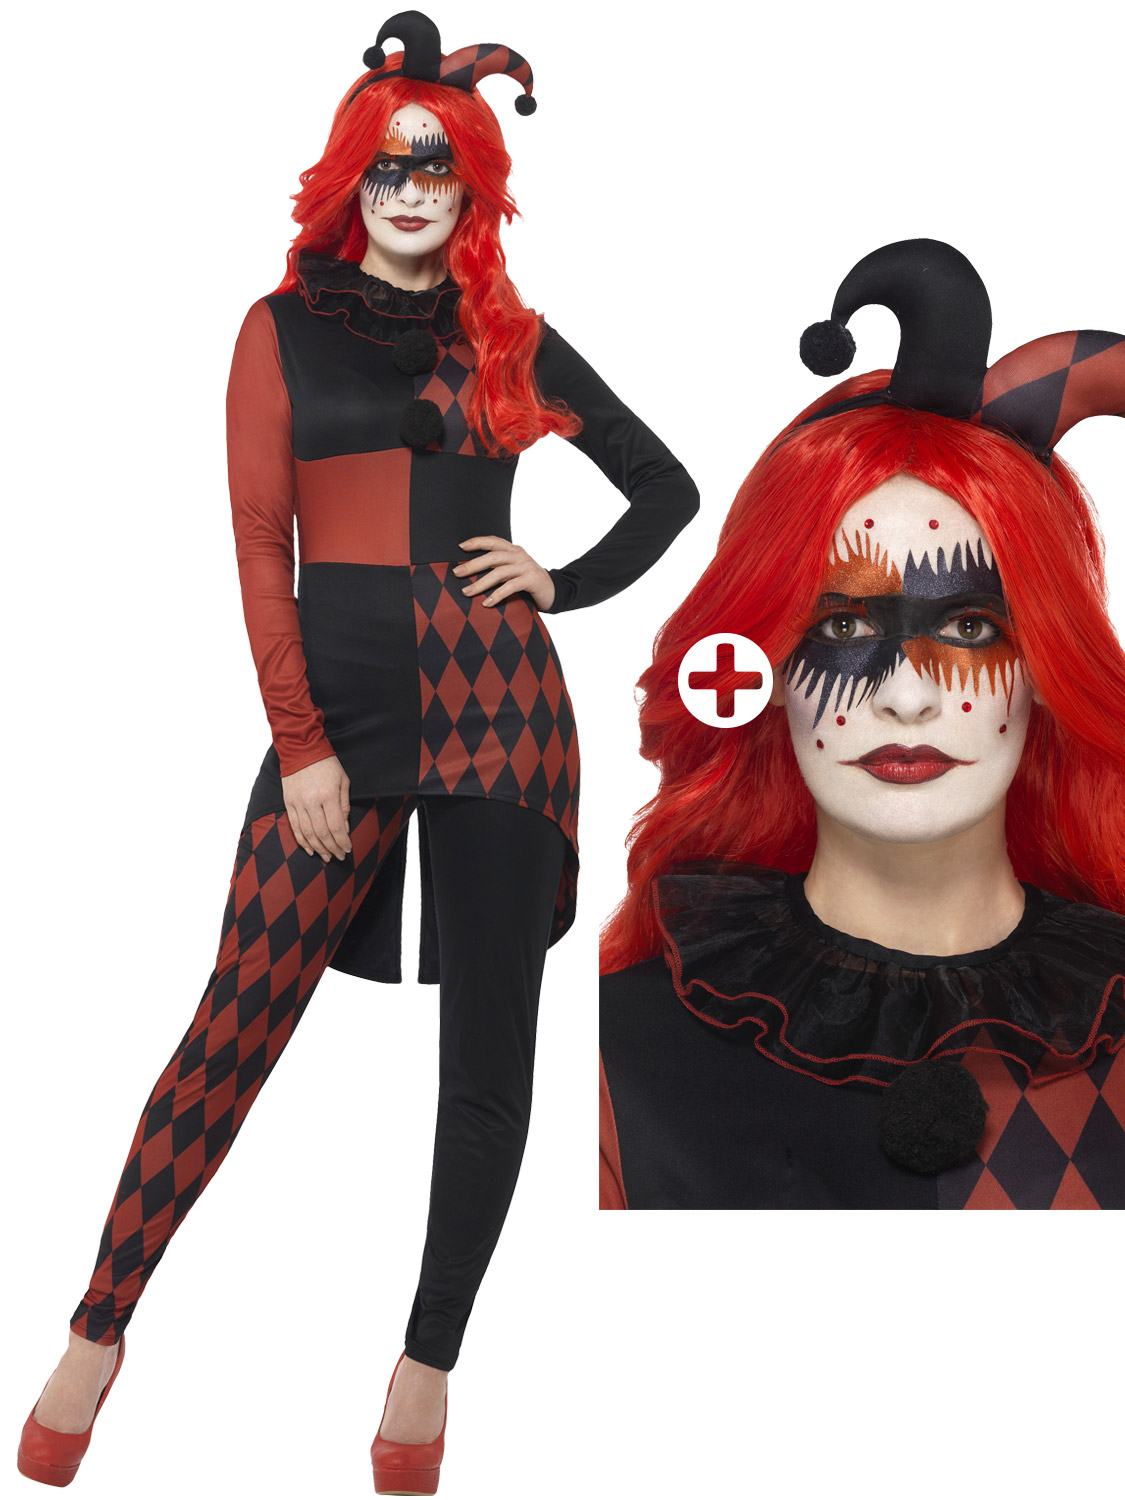 Ladies jester harlequin costume evil clown jesterina fancy dress transform yourself into an evil jester with this ladies horror harlequin costume ideal if you are dressing up for halloween solutioingenieria Image collections